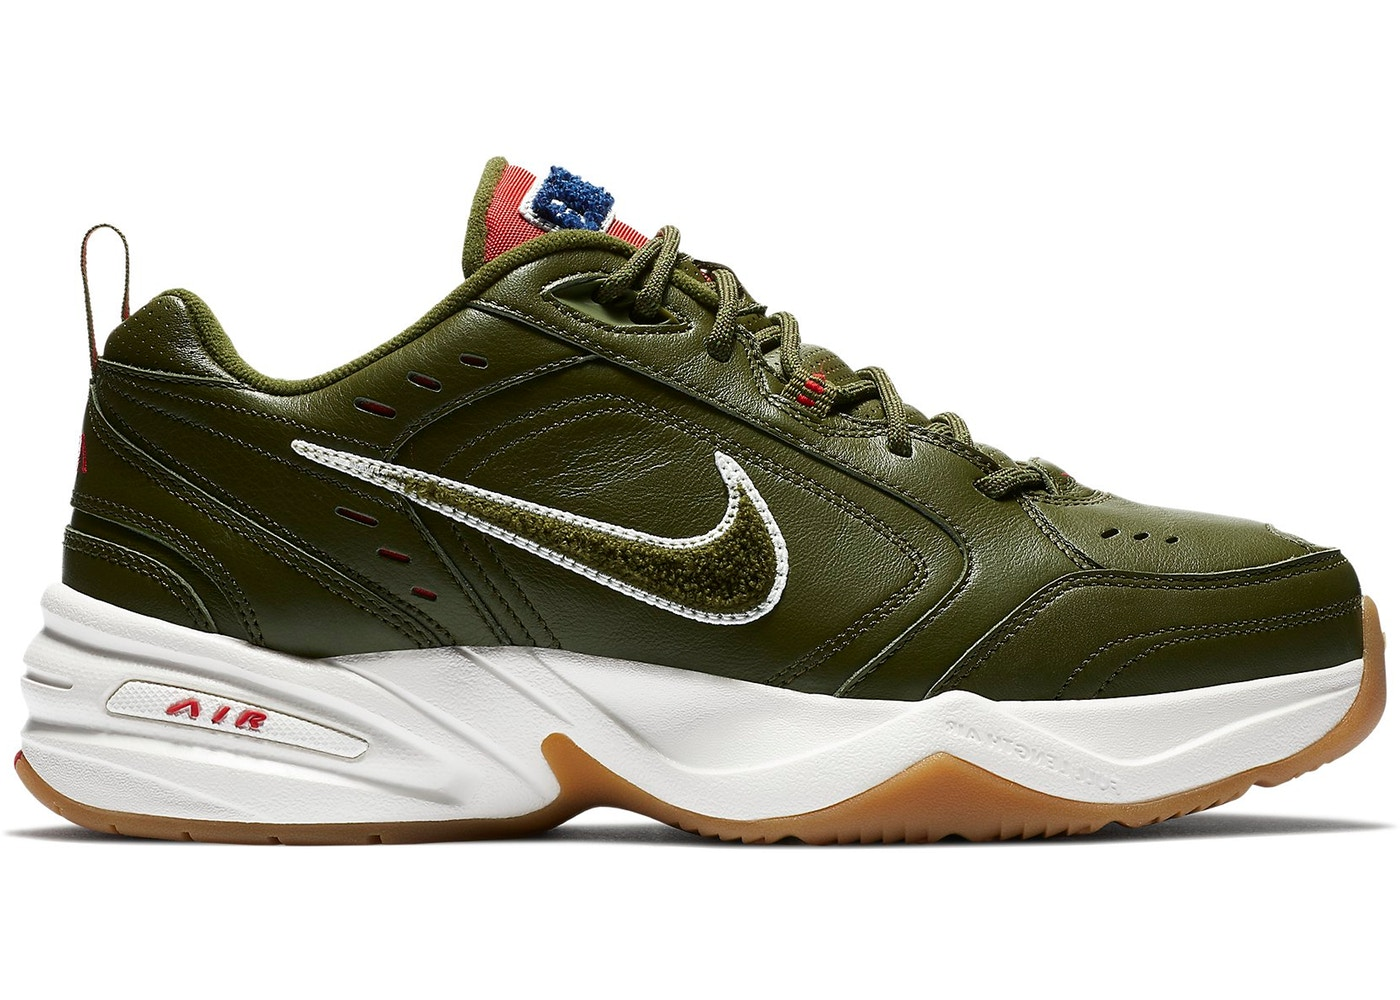 Air Monarch IV Weekend Campout - AV6676-300 97243cc2b886